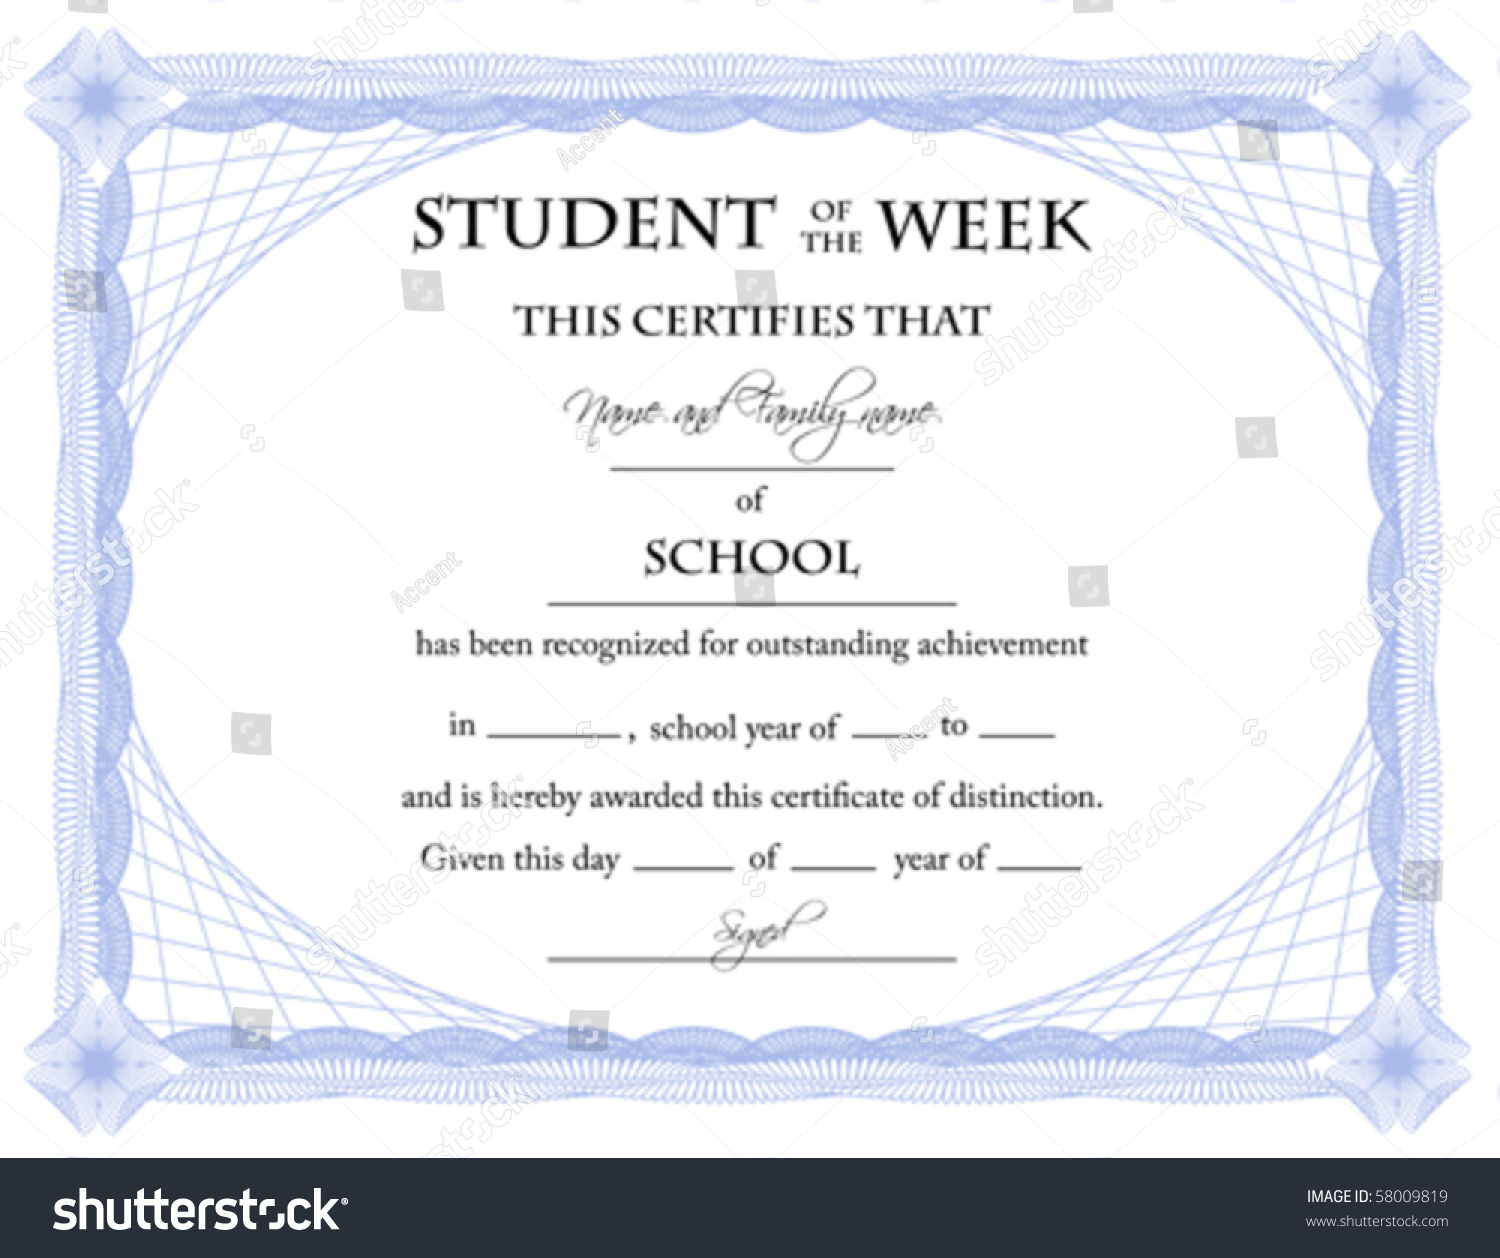 Student week certificate vector stock vector 58009819 shutterstock student of the week certificate vector xflitez Choice Image